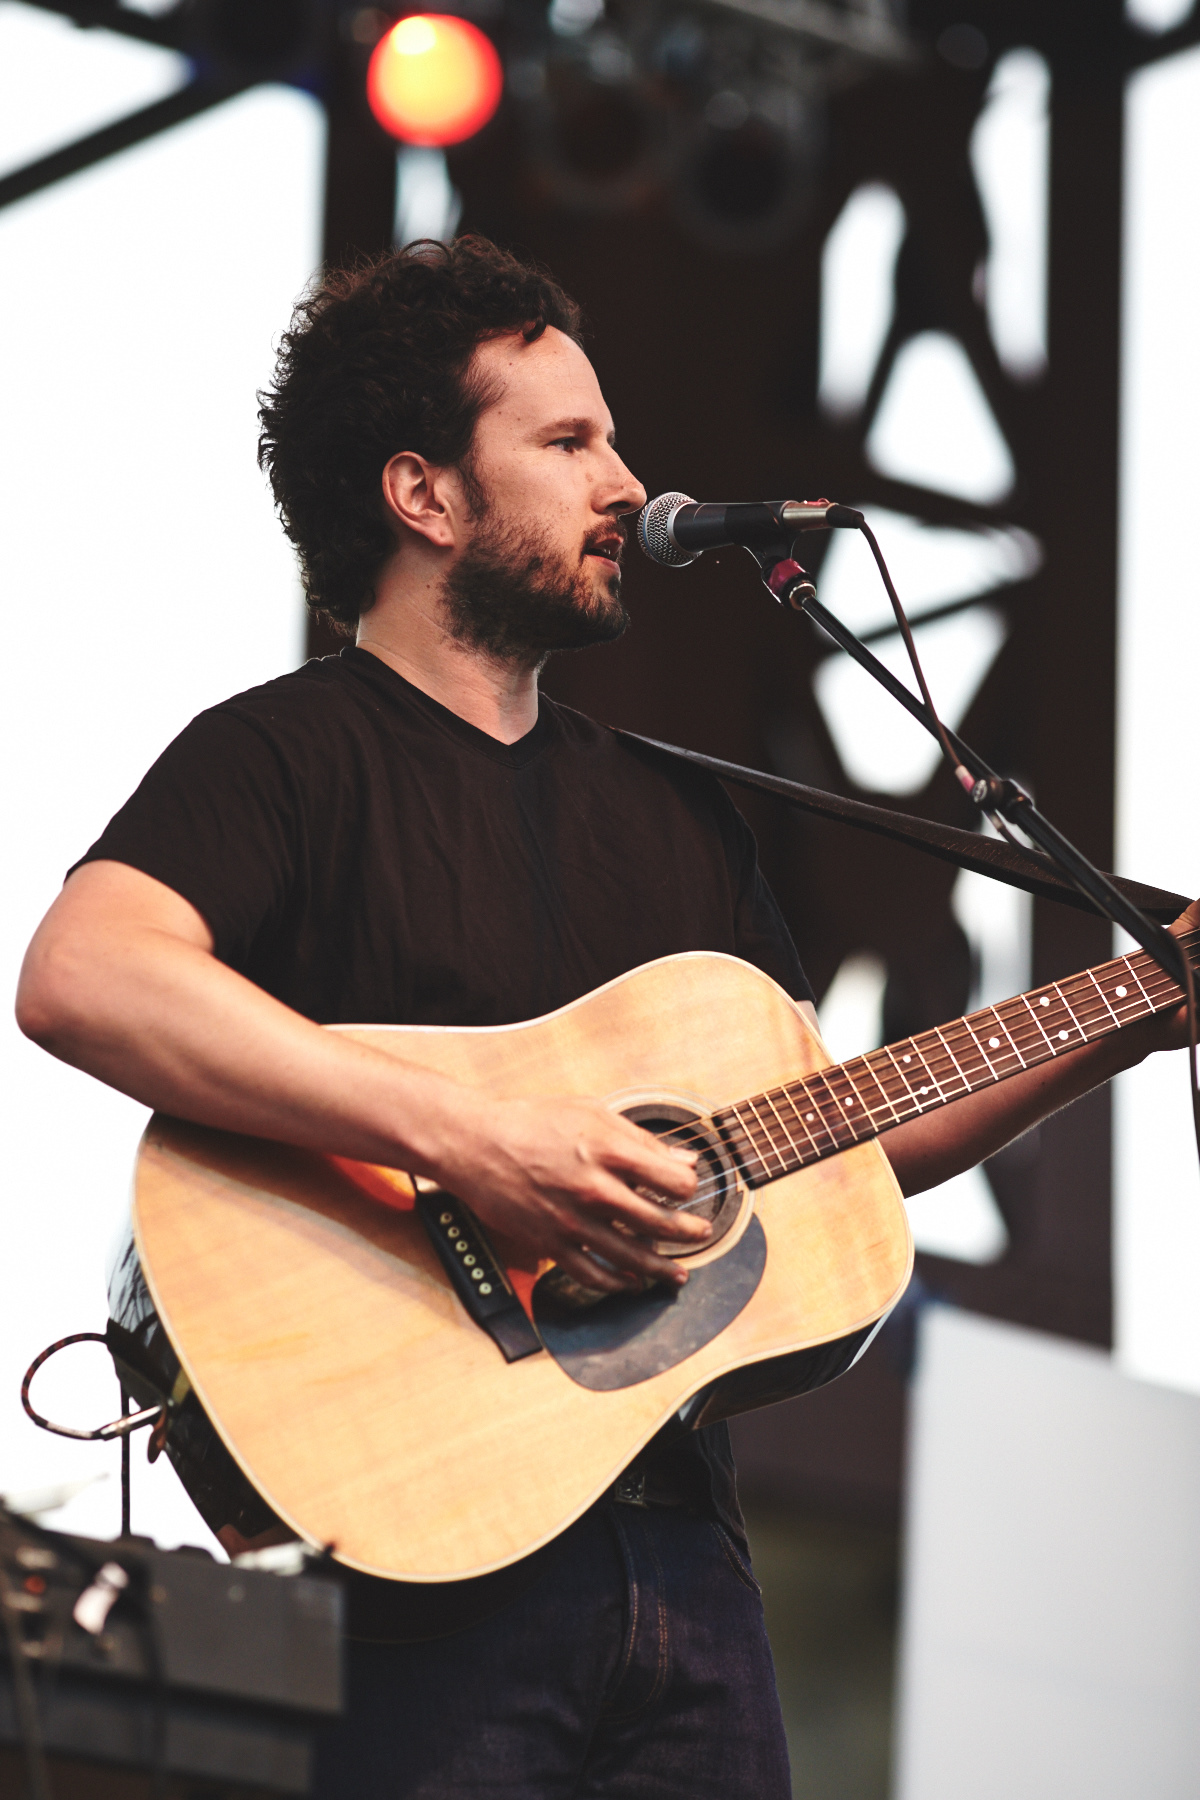 Mason_Jennings_At_Twin_Ports_Music_Festival_Duluth_By_Photographer_Joe_Lemke_046.JPG